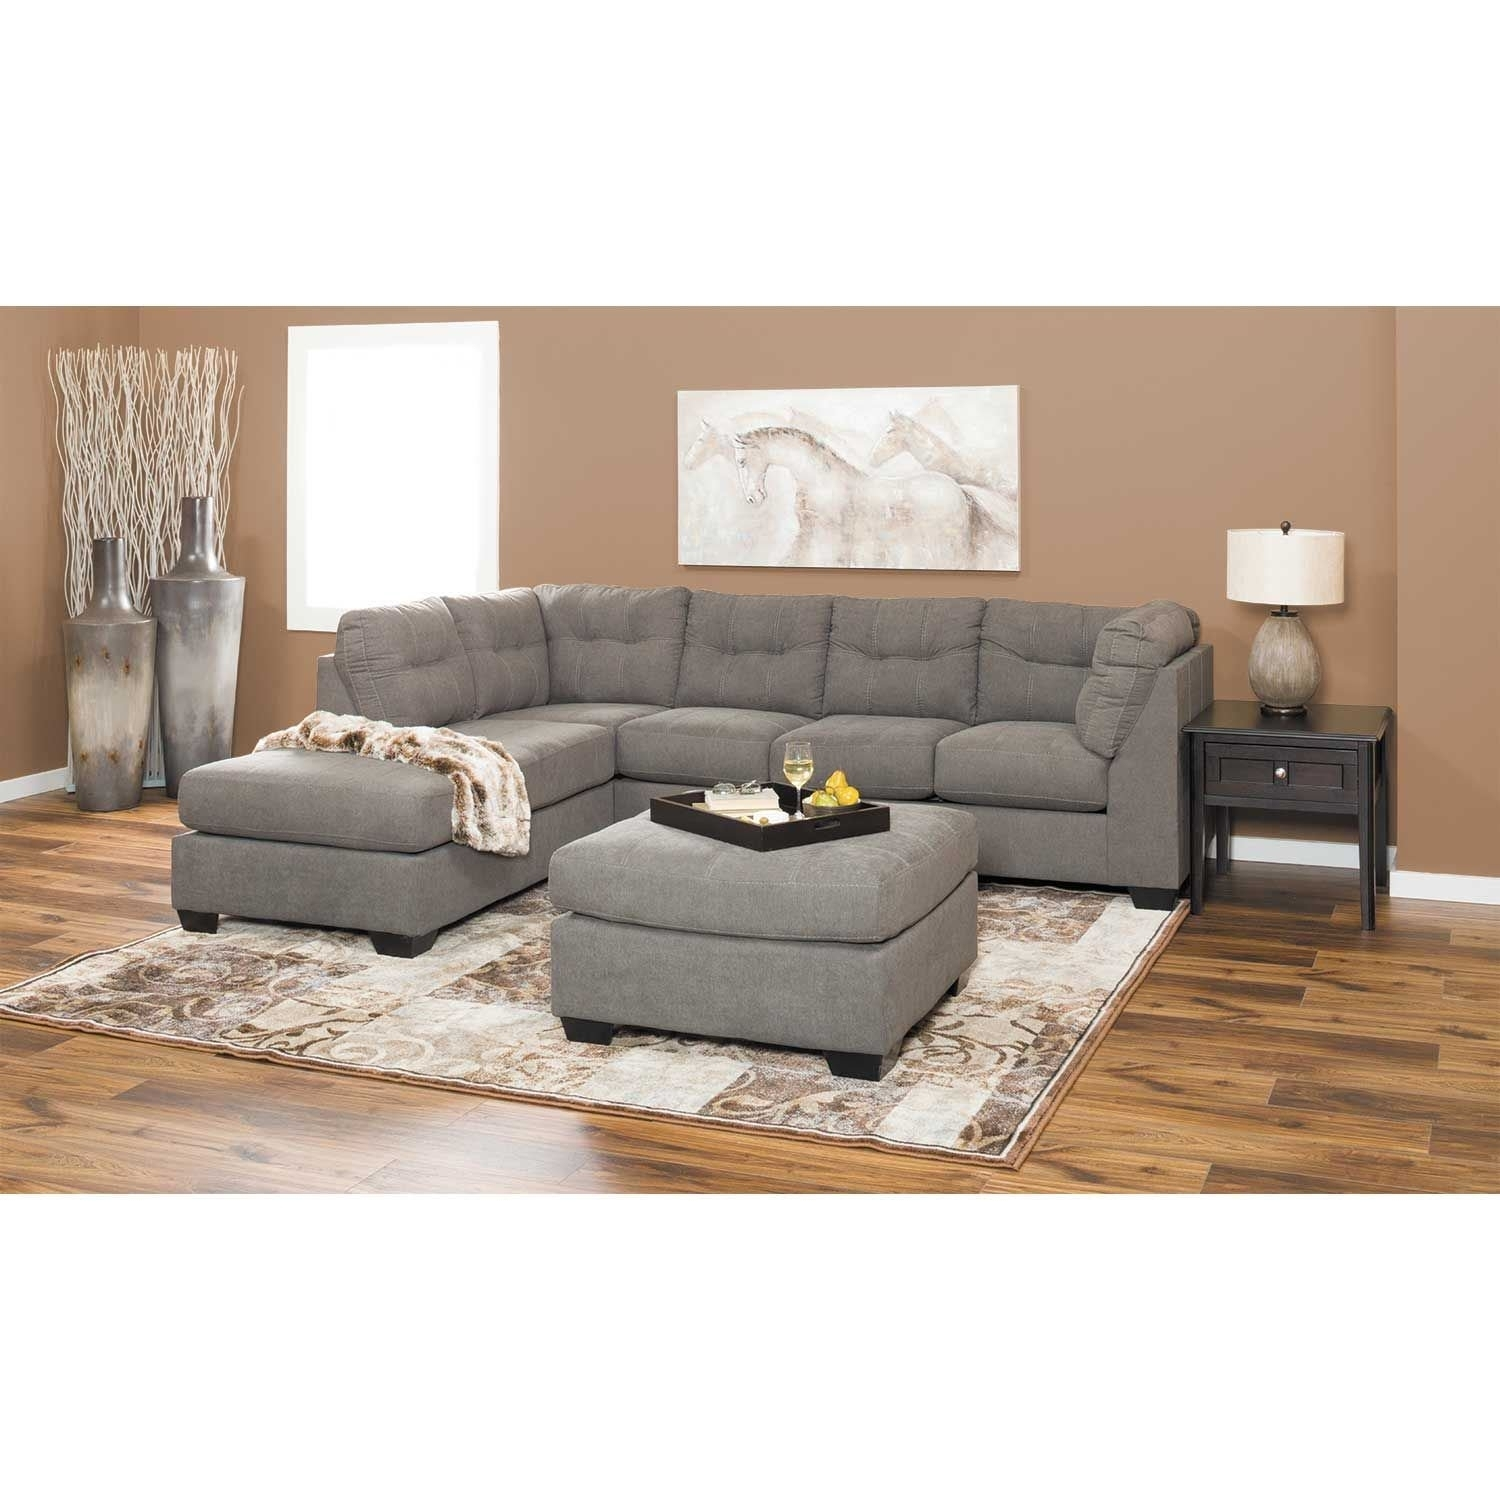 Maier Charcoal 2 Piece Sectional With Laf Chaise | 4520016/67 pertaining to Arrowmask 2 Piece Sectionals With Raf Chaise (Image 20 of 30)